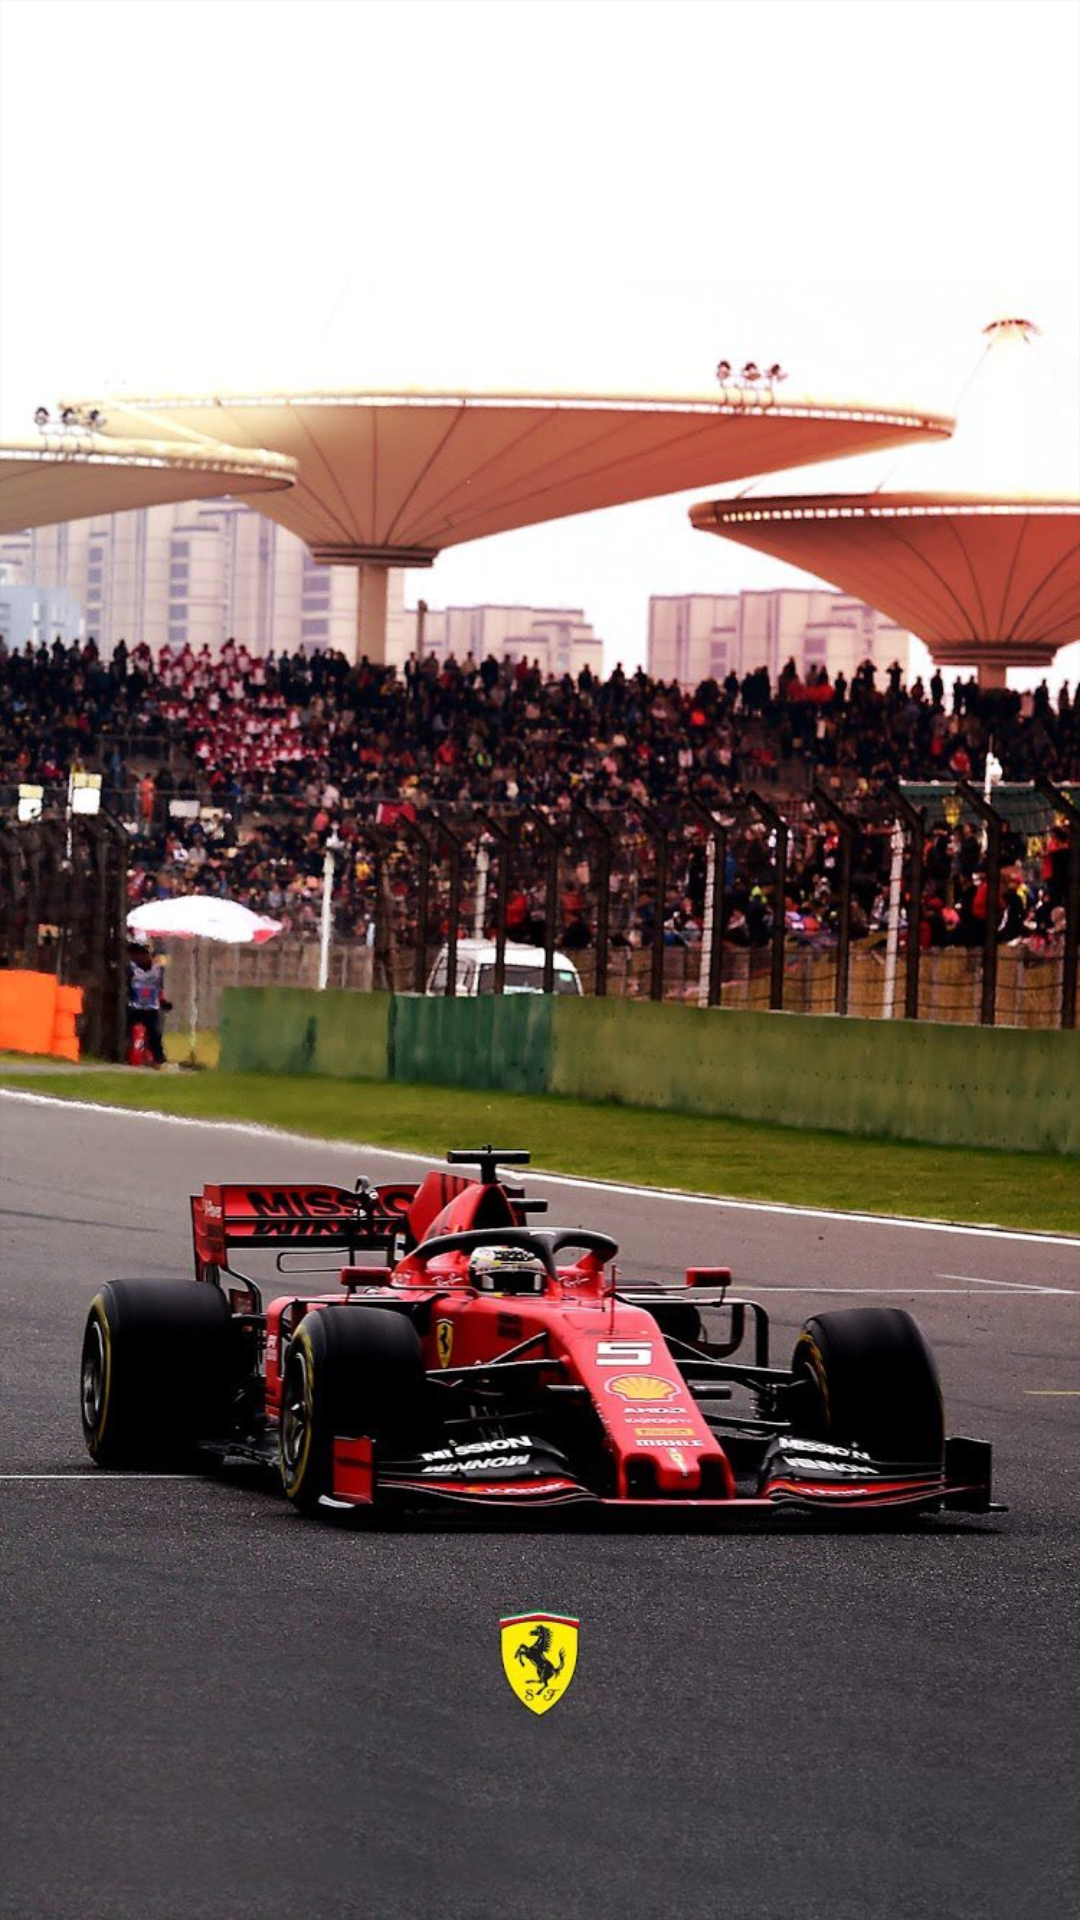 Download F1 Ferrari Wallpaper On High Quality Wallpaper On Hdwallpaper9 Com Iphone Android Wallpaper F1 Ferrari In 2020 Ferrari Ferrari Racing Car Competitions